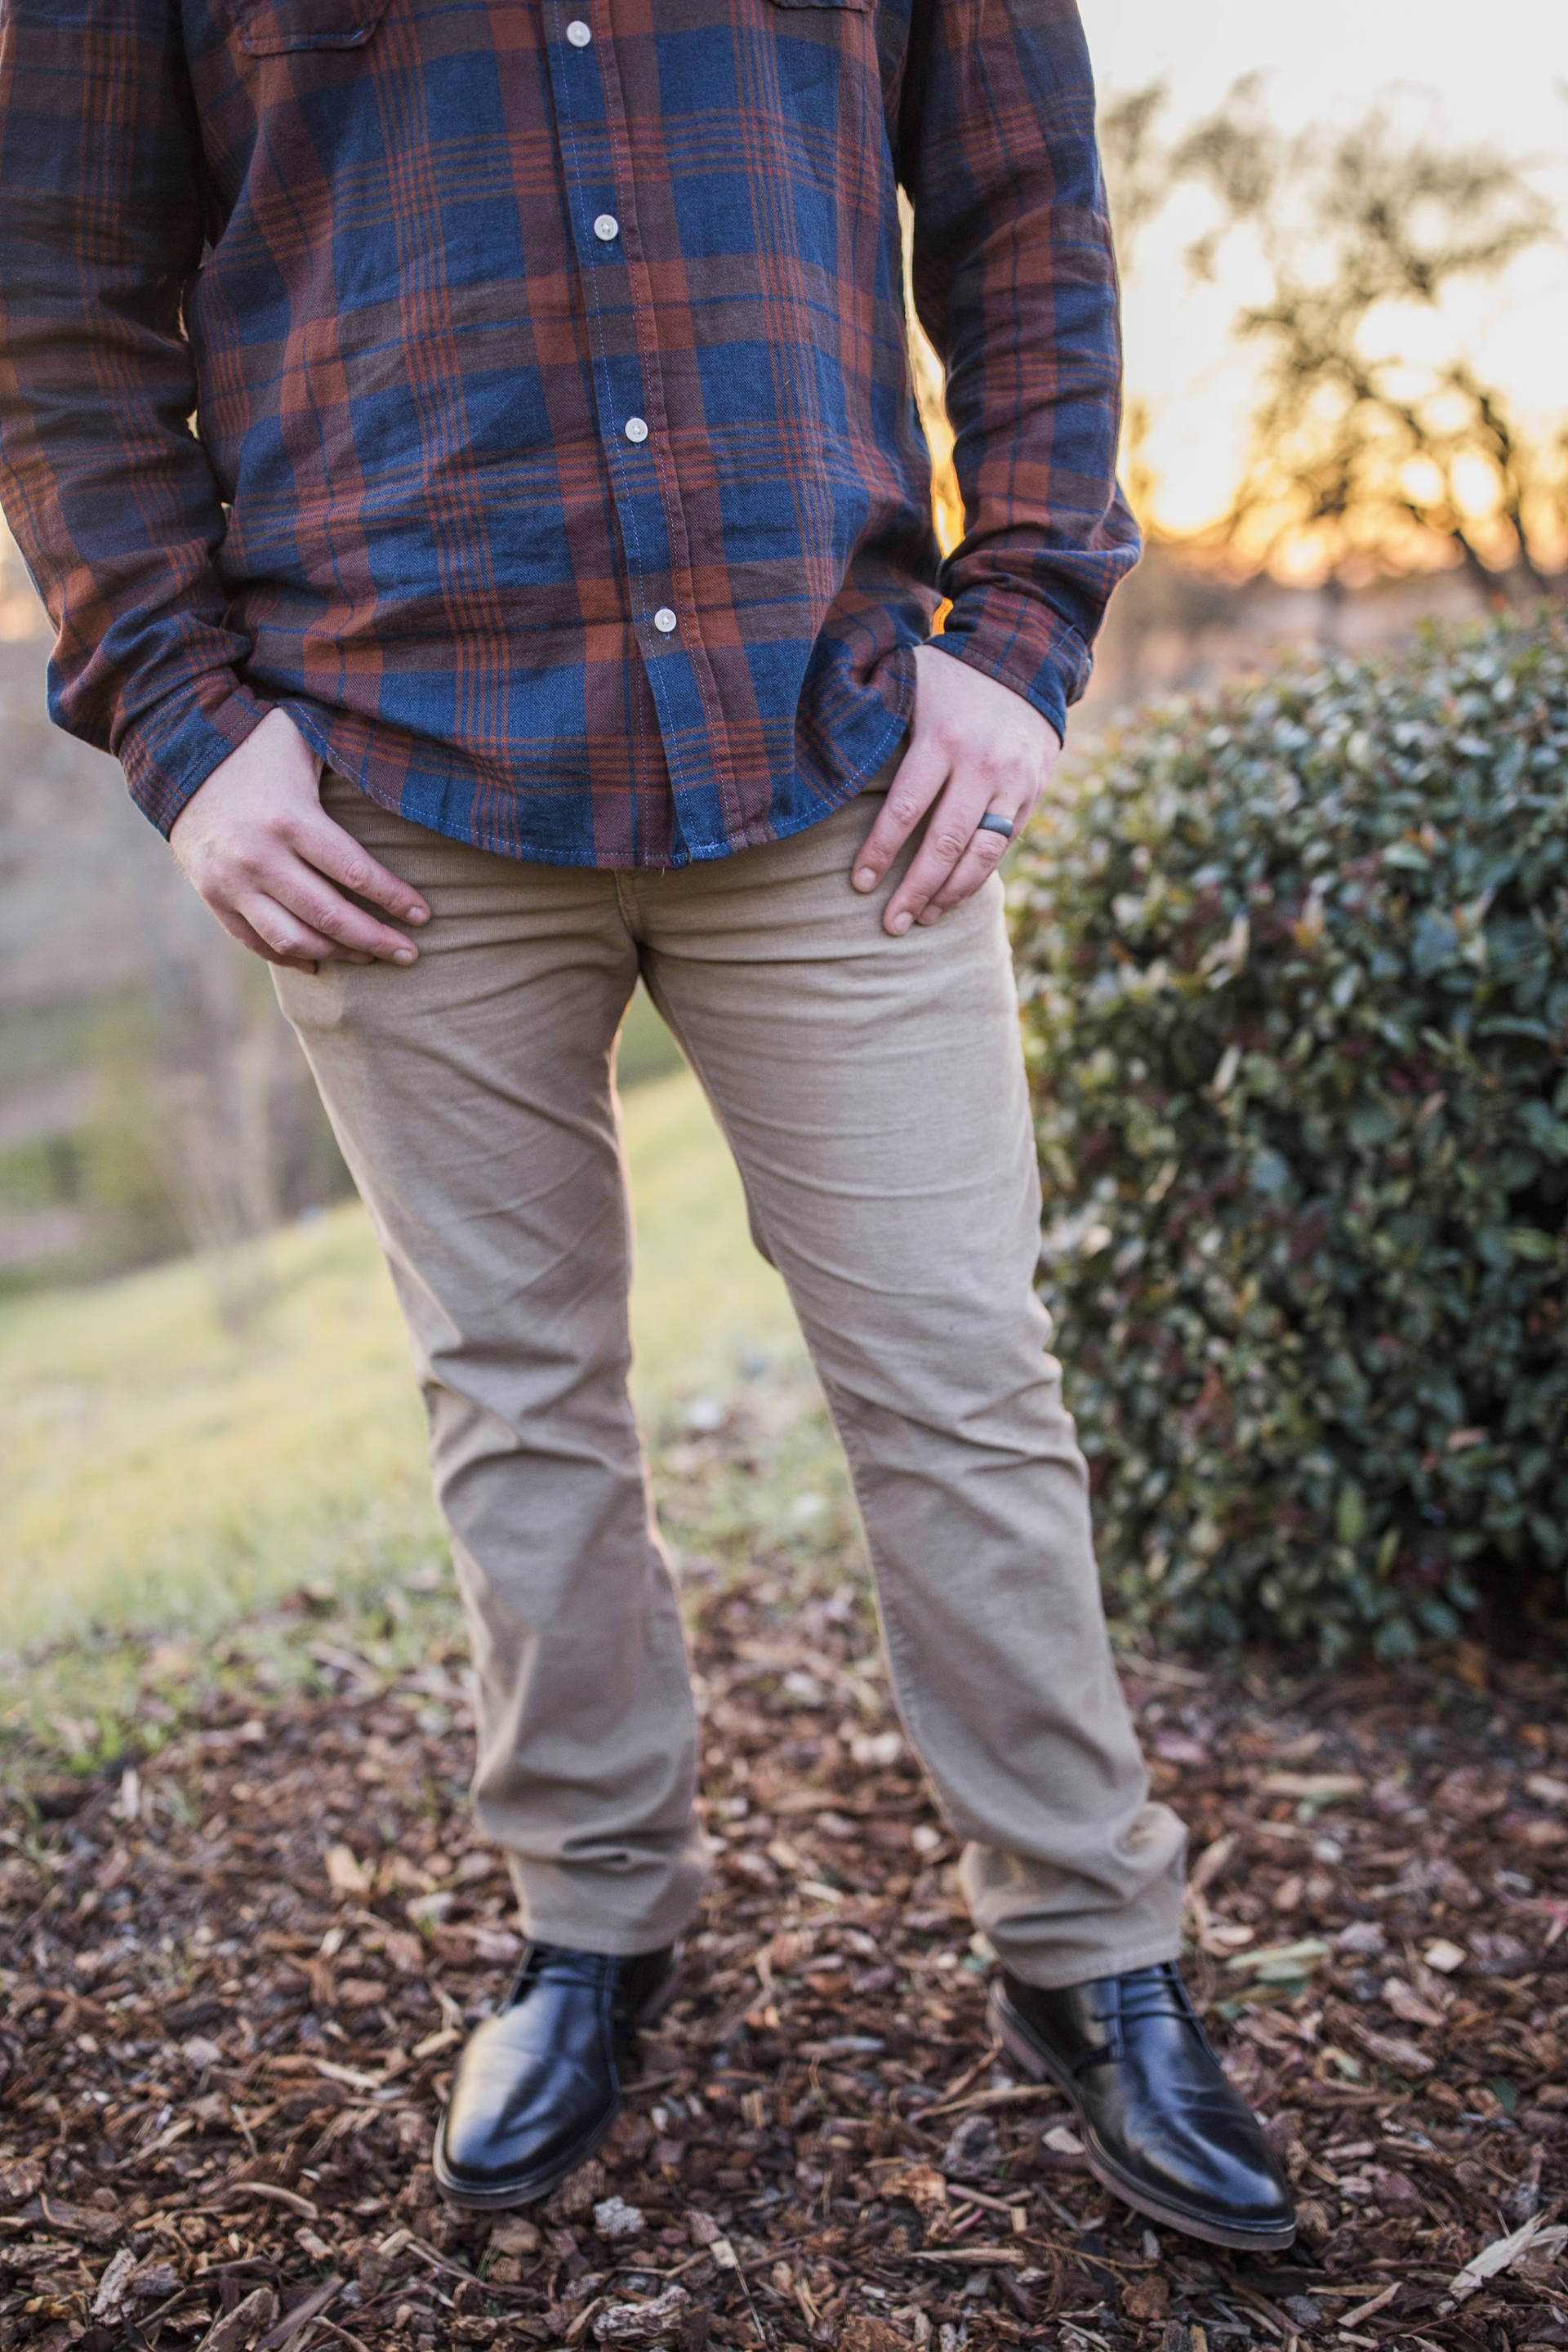 Stitch's Jeans USA: Versatility, Wearability, Modern Fit, Comfort and Durability. Everything a man looks for in clothing.